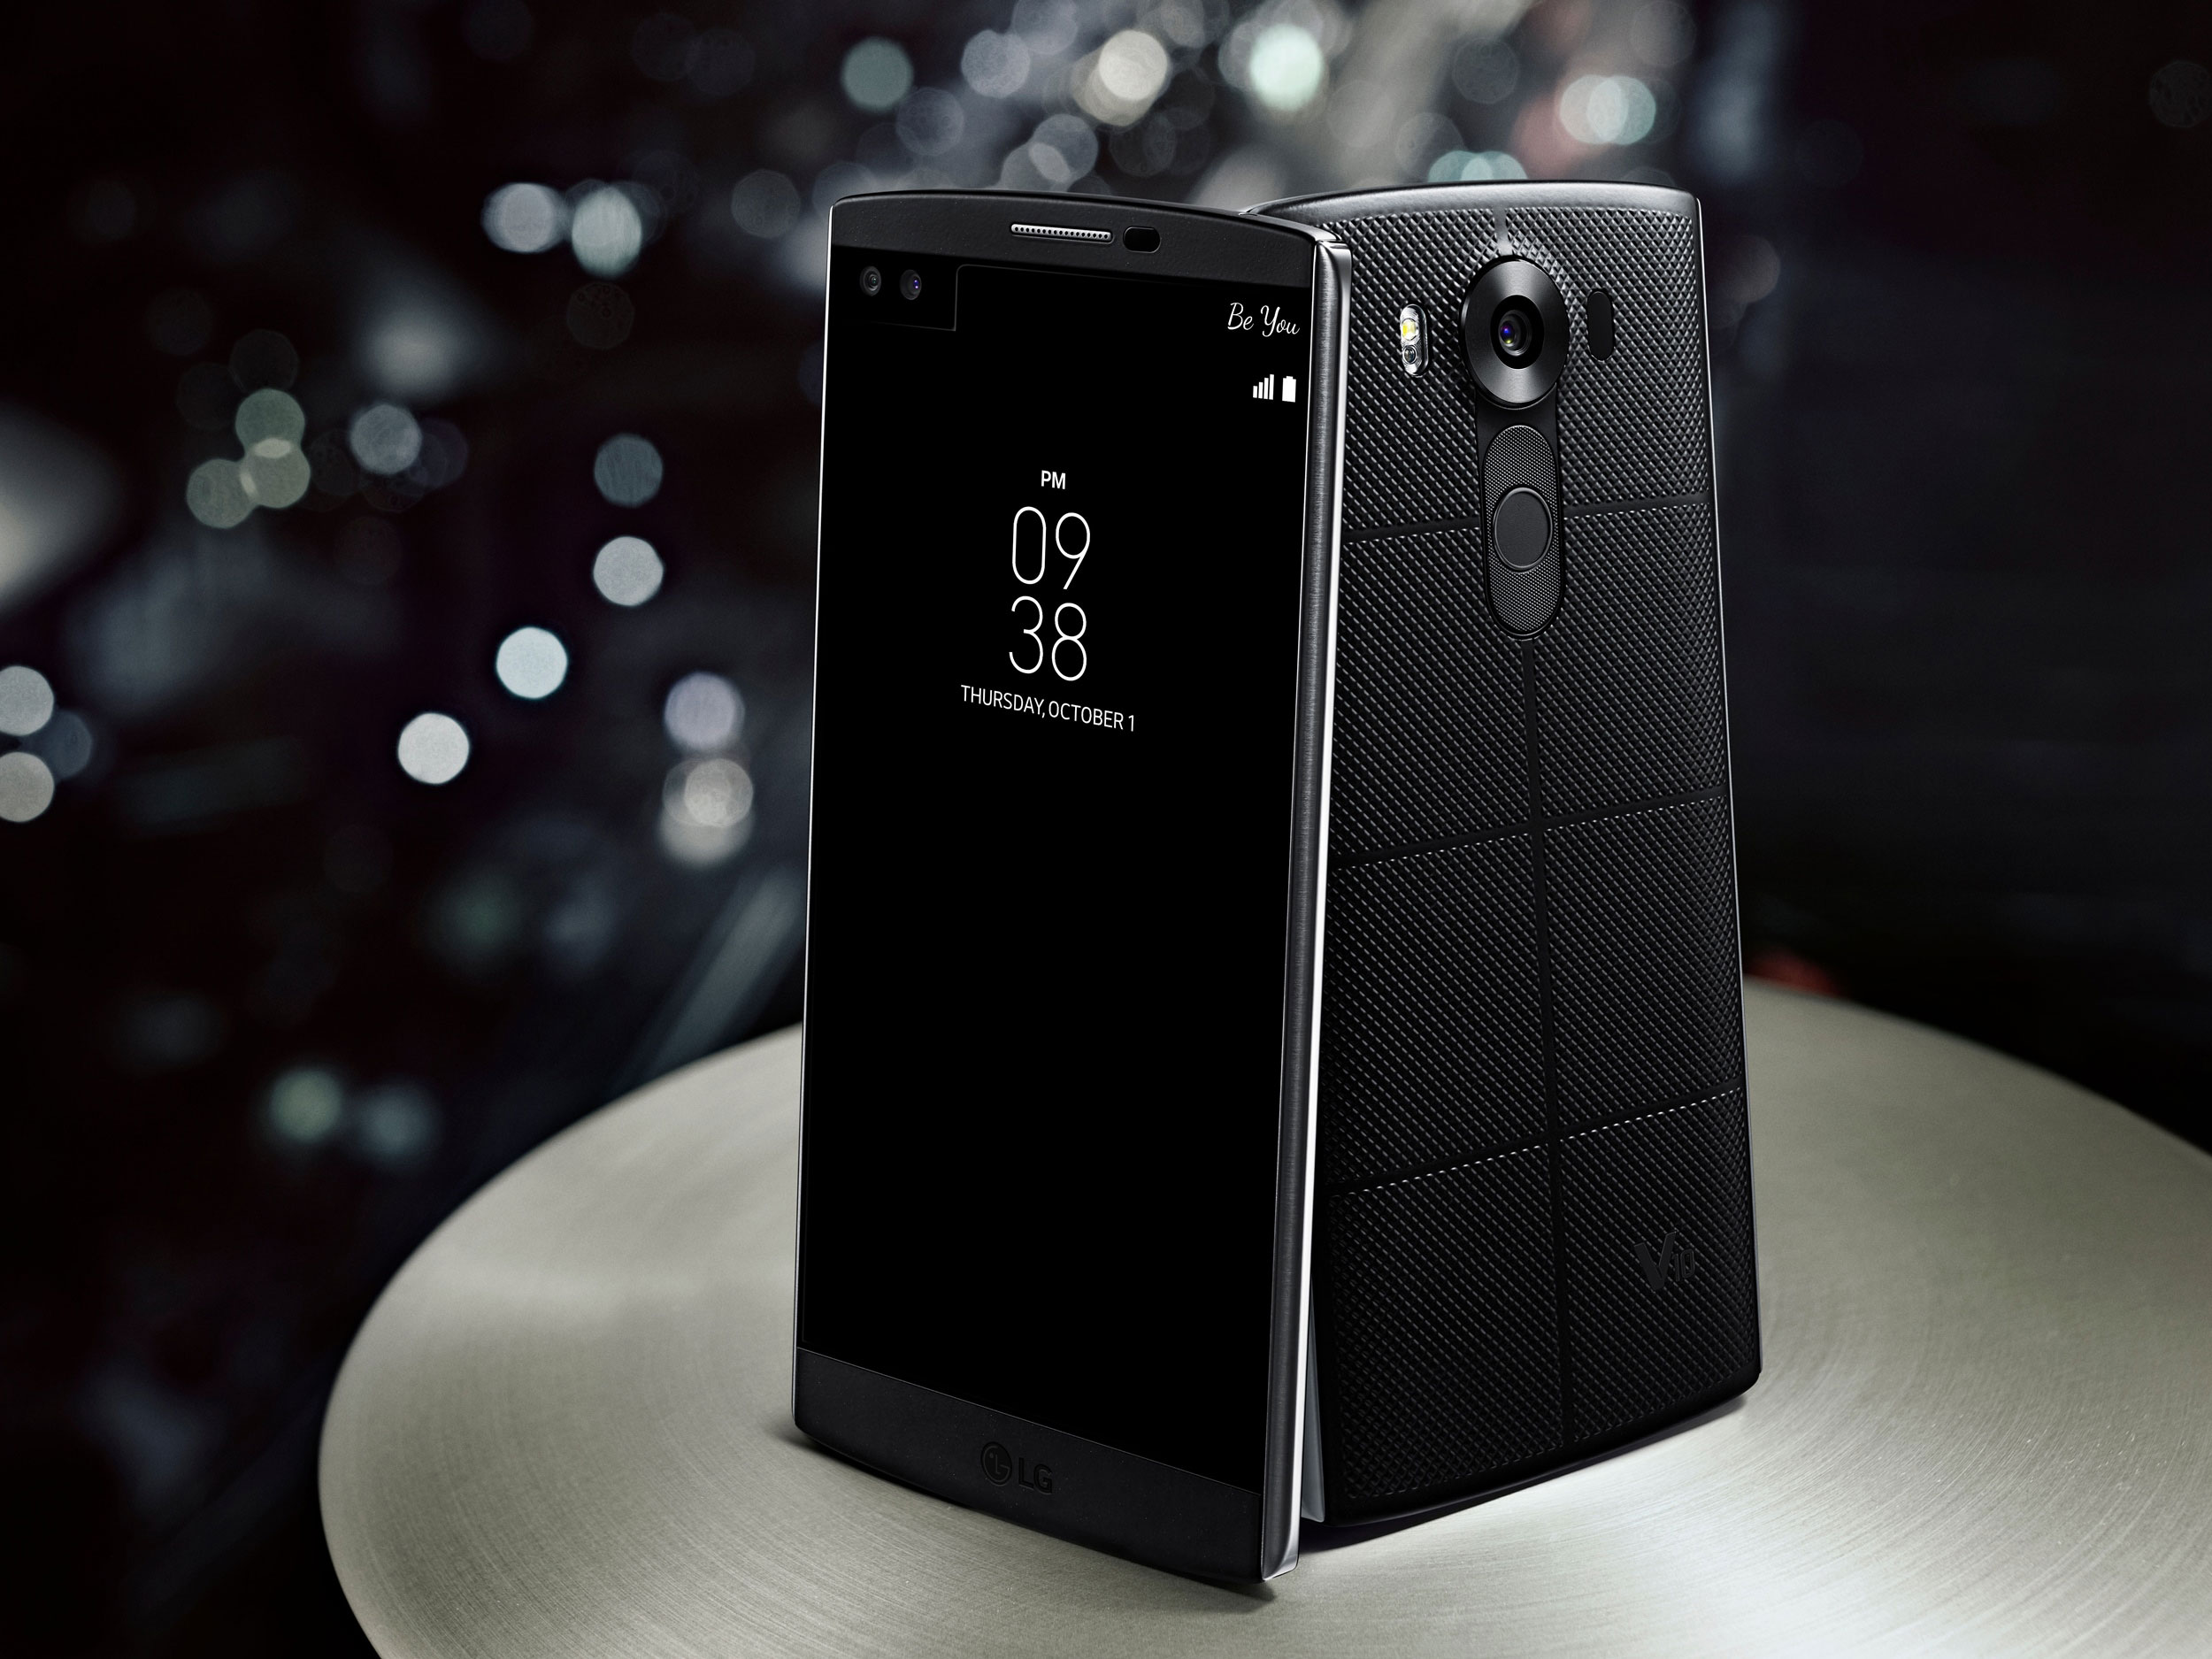 The sound in the LG V10 has been designed to be best-in-class